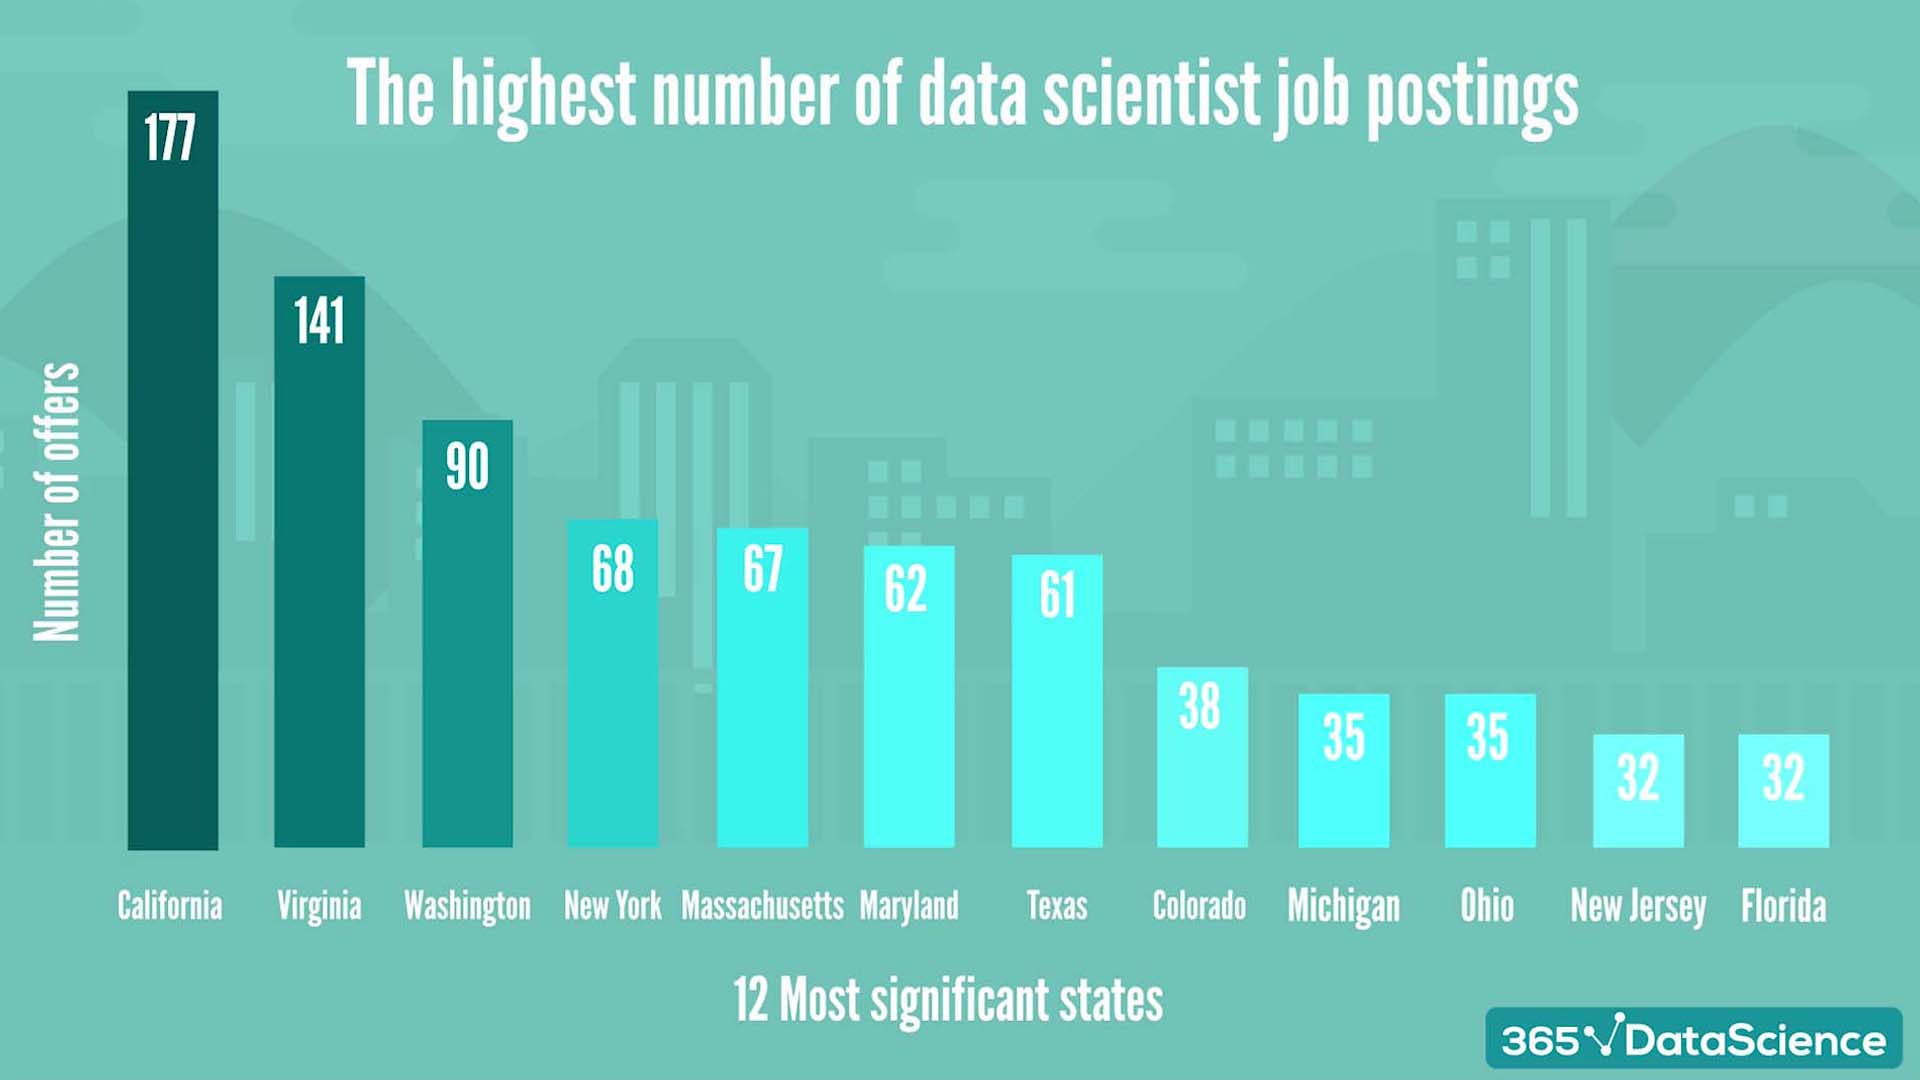 Top 12 states with the highest number of data science job offers in the USA